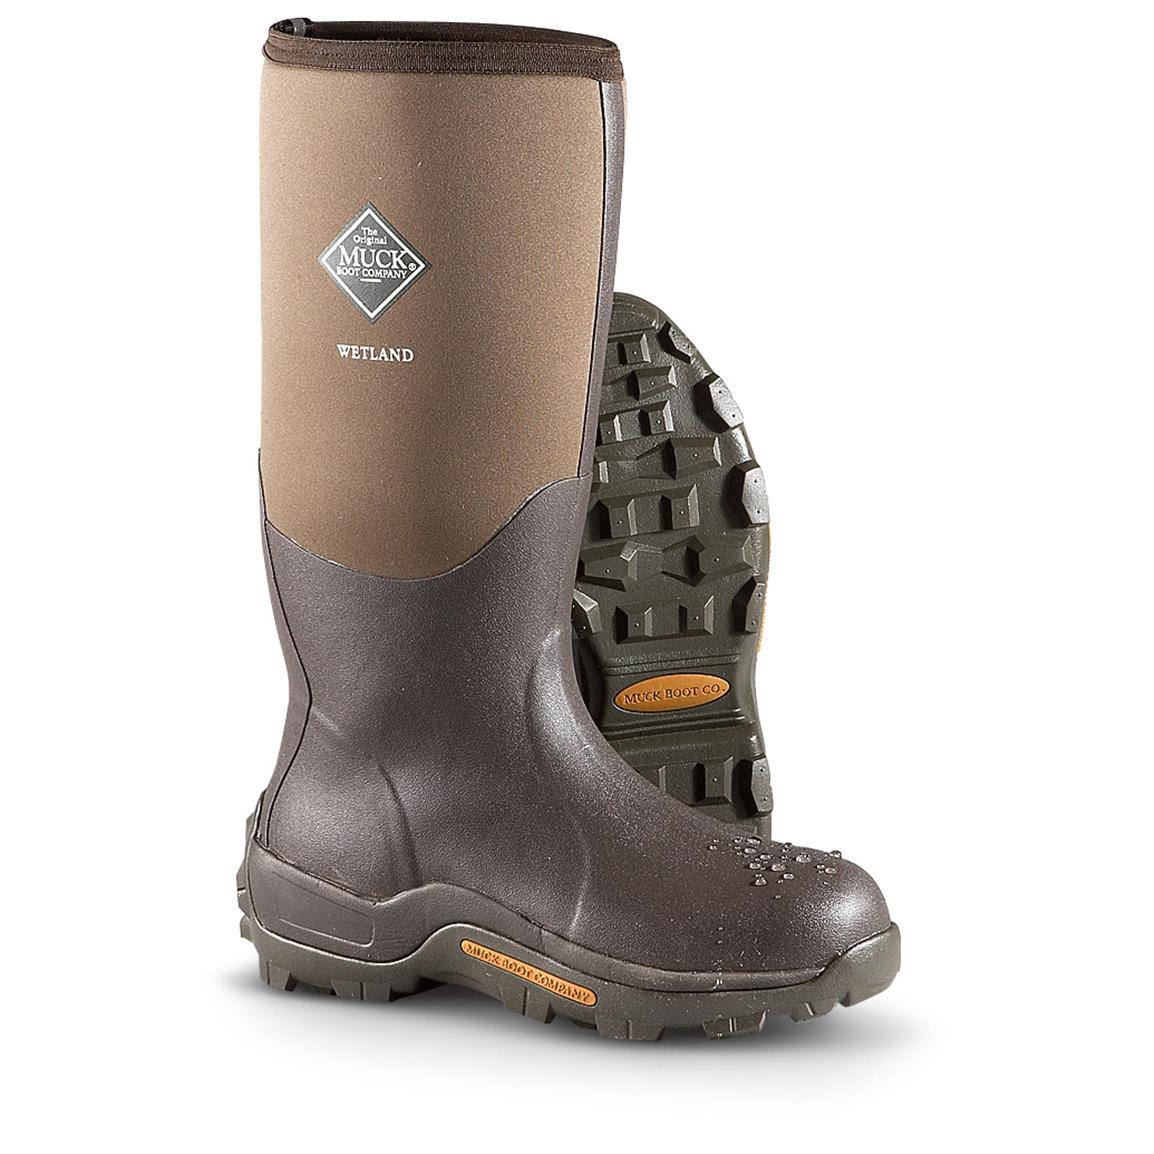 Wetland Muck Boots 4uK8uaP3